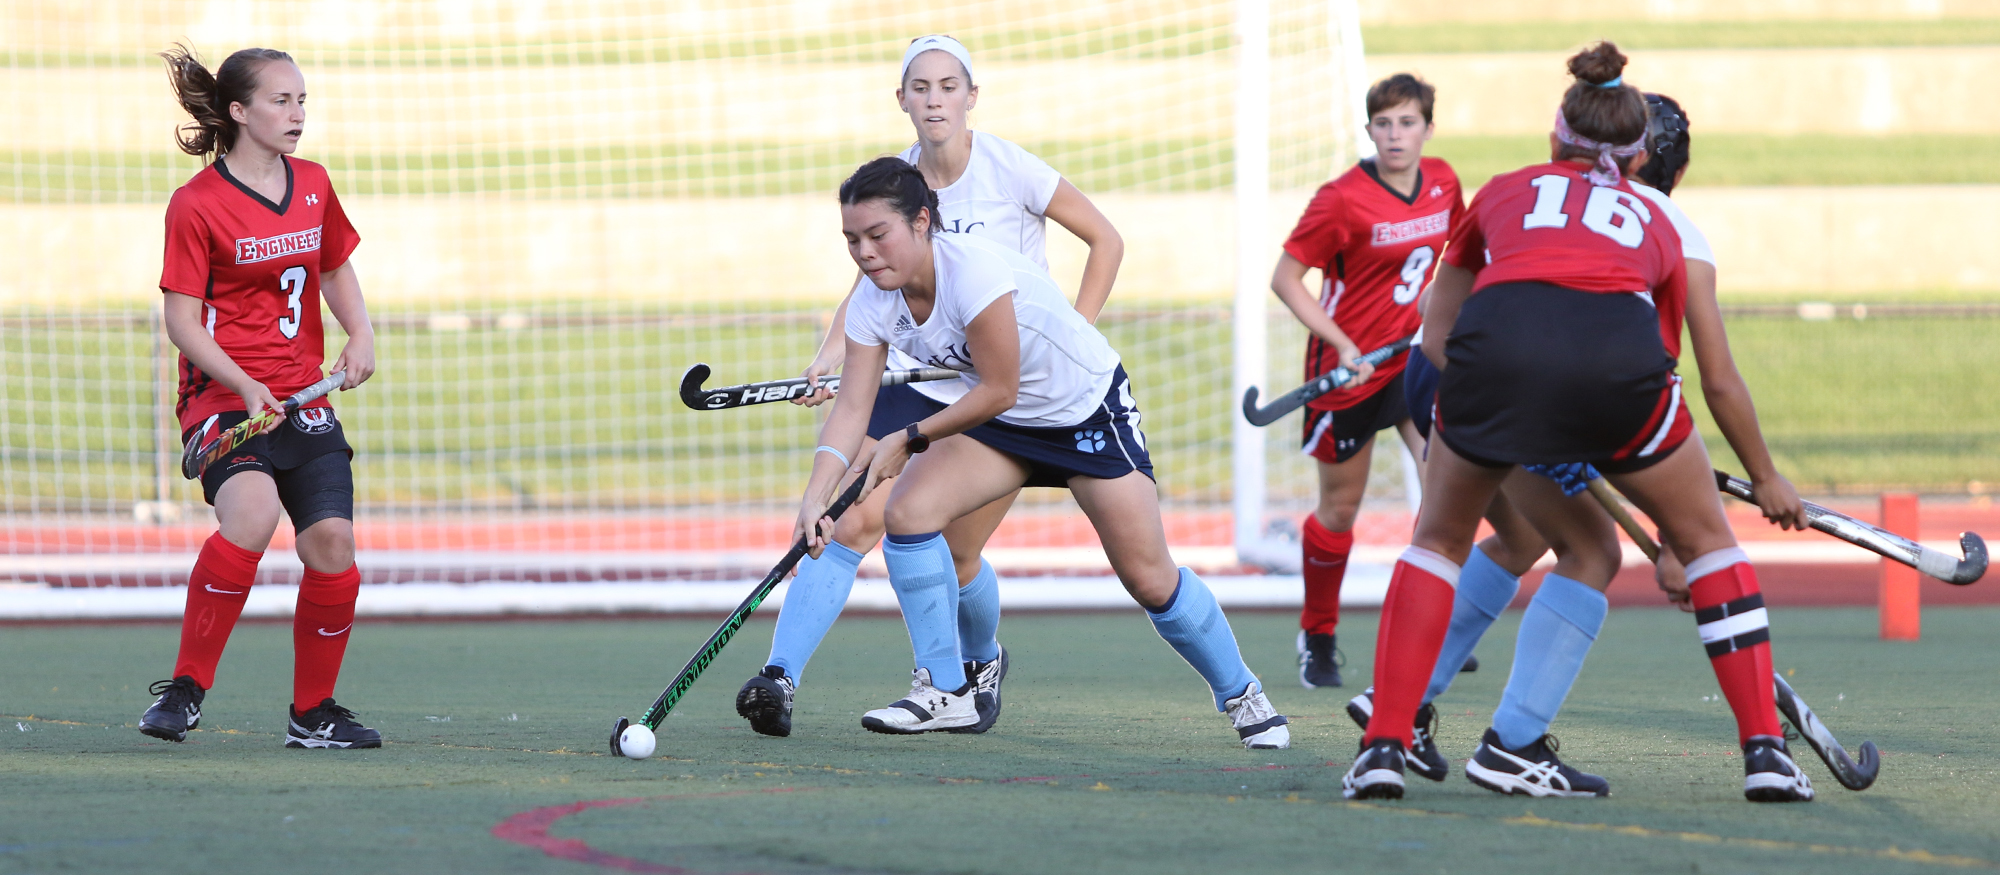 Senior field hockey player Liz Delorme dribbles the ball during a 3-2 win at RPI on Sept. 2, 2018. Photo credit to Perry Laskaris (RPI Athletics)